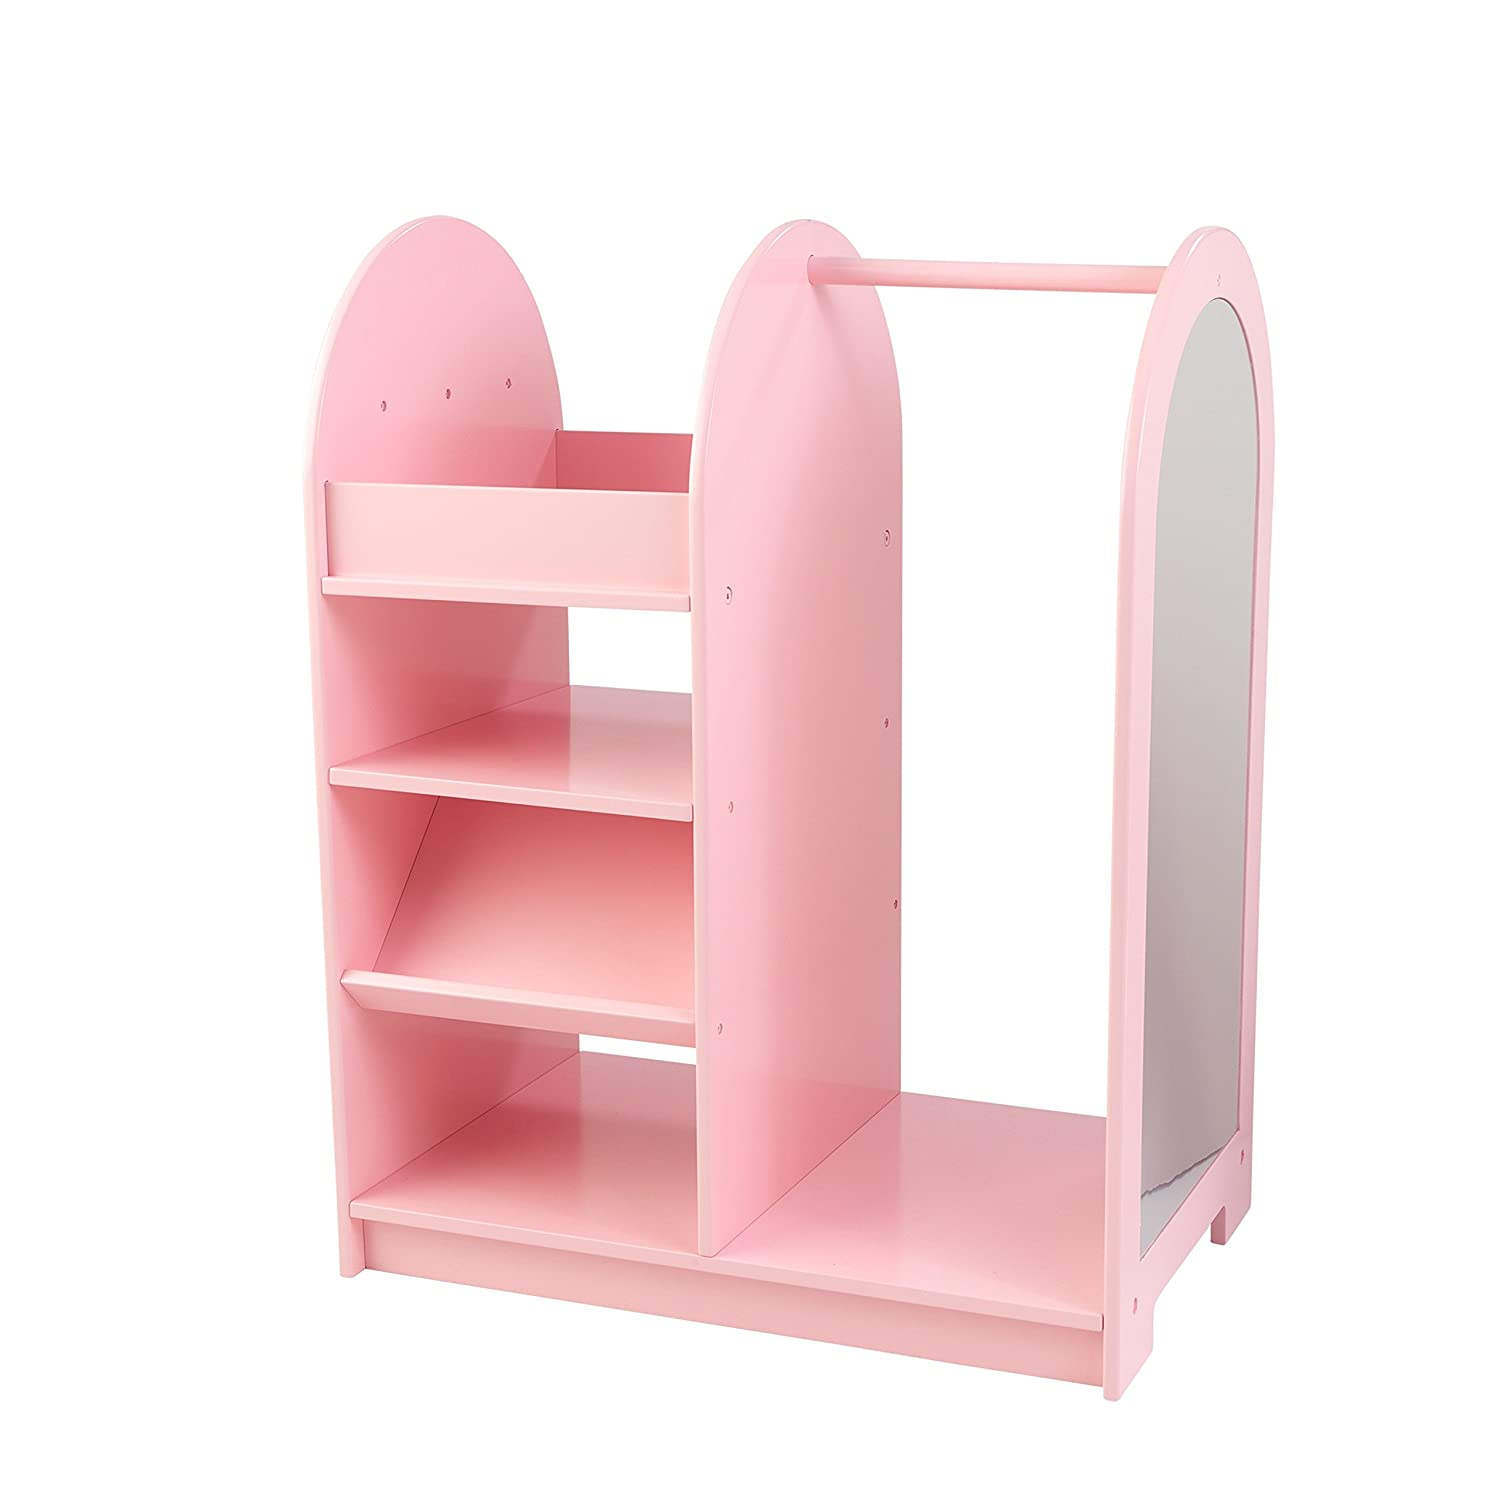 KidKraft Wooden Fashion Pretend Dress-Up Station Children's Furniture with Storage and Mirror - Pink